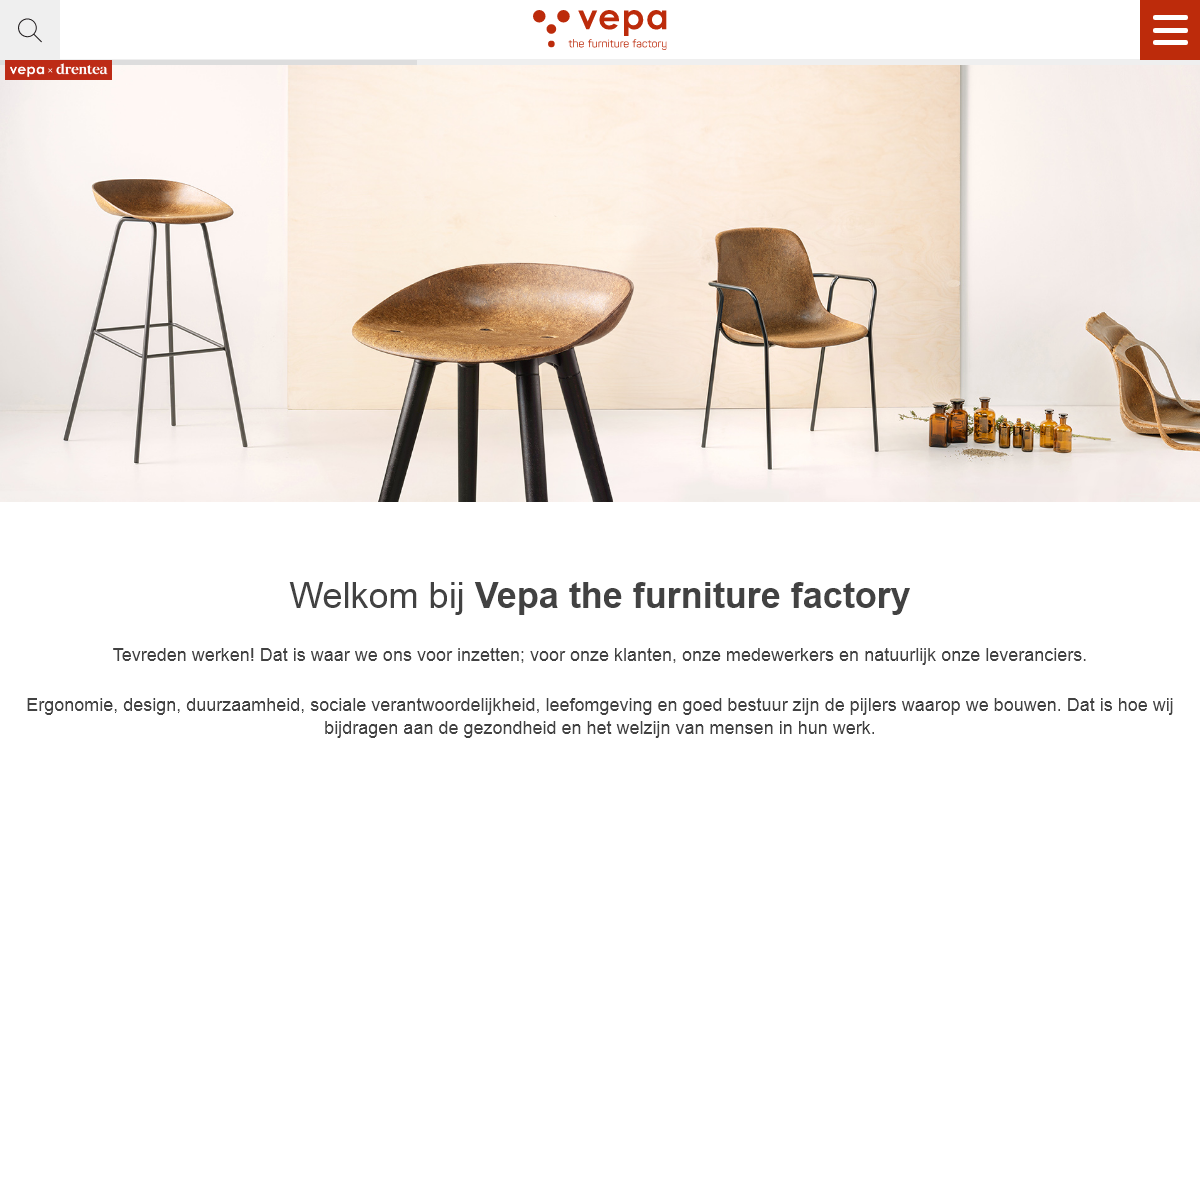 Vepa the furniture factory